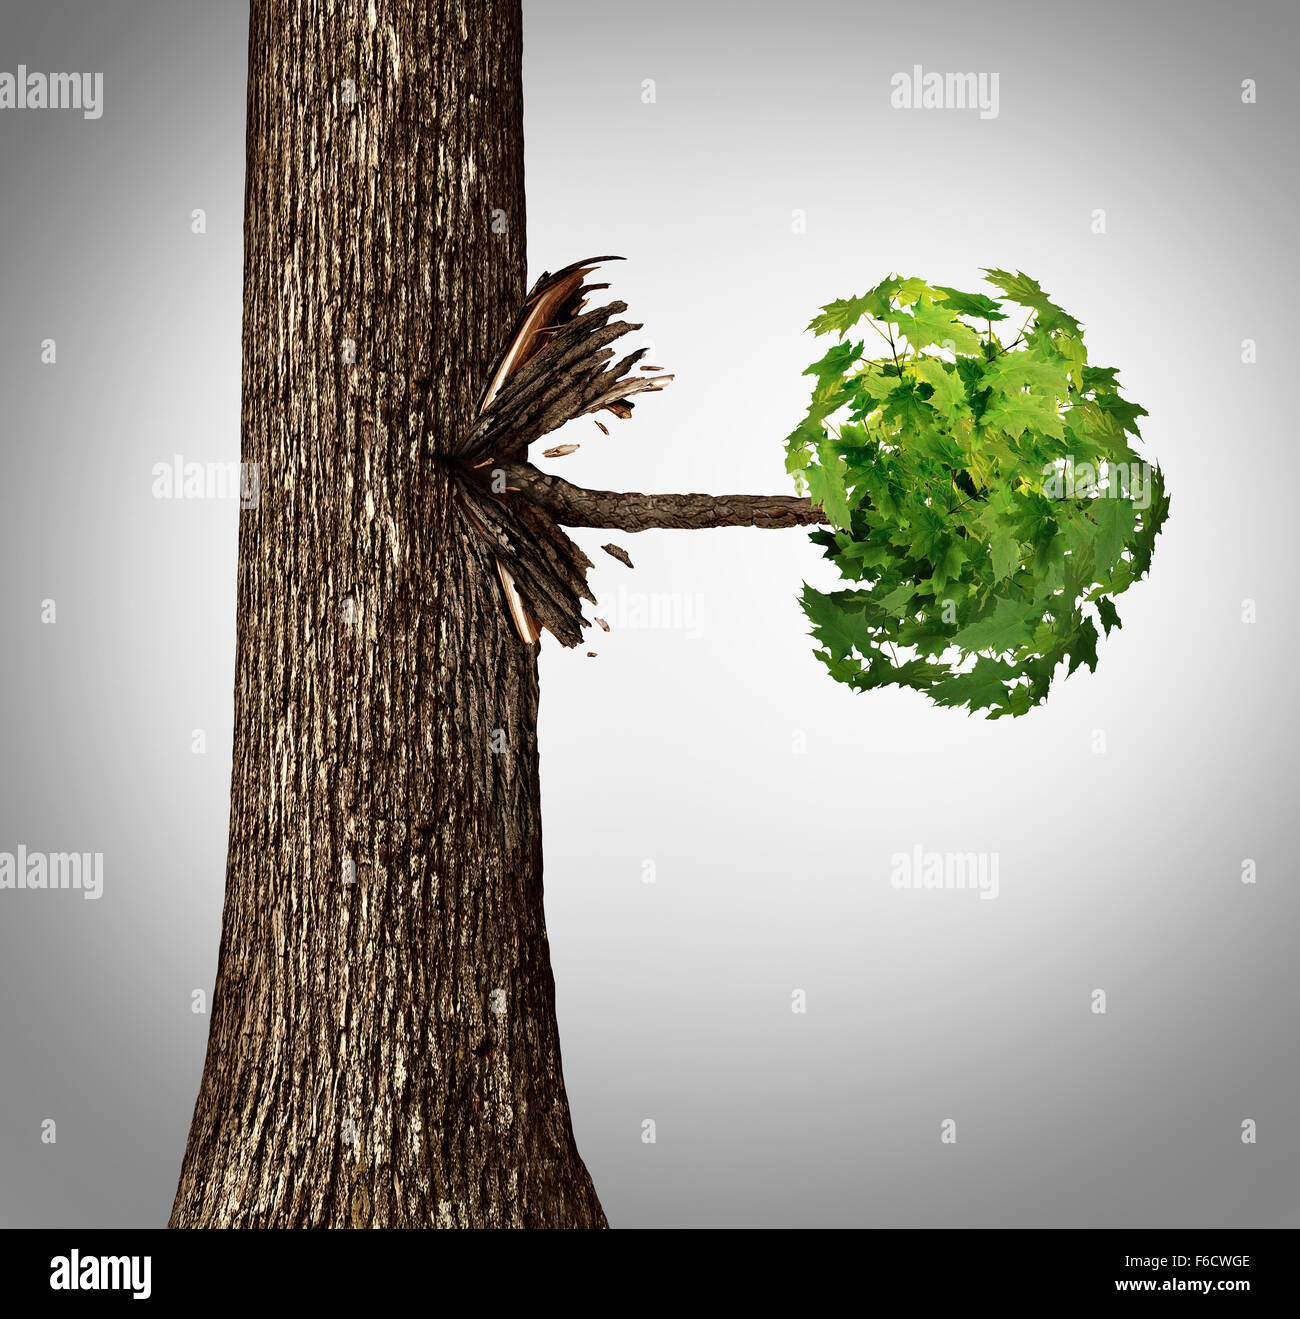 Offshoot concept as a lateral move business metaphor as a tree trunk with a sideways branch and leaves bursting - Stock Image